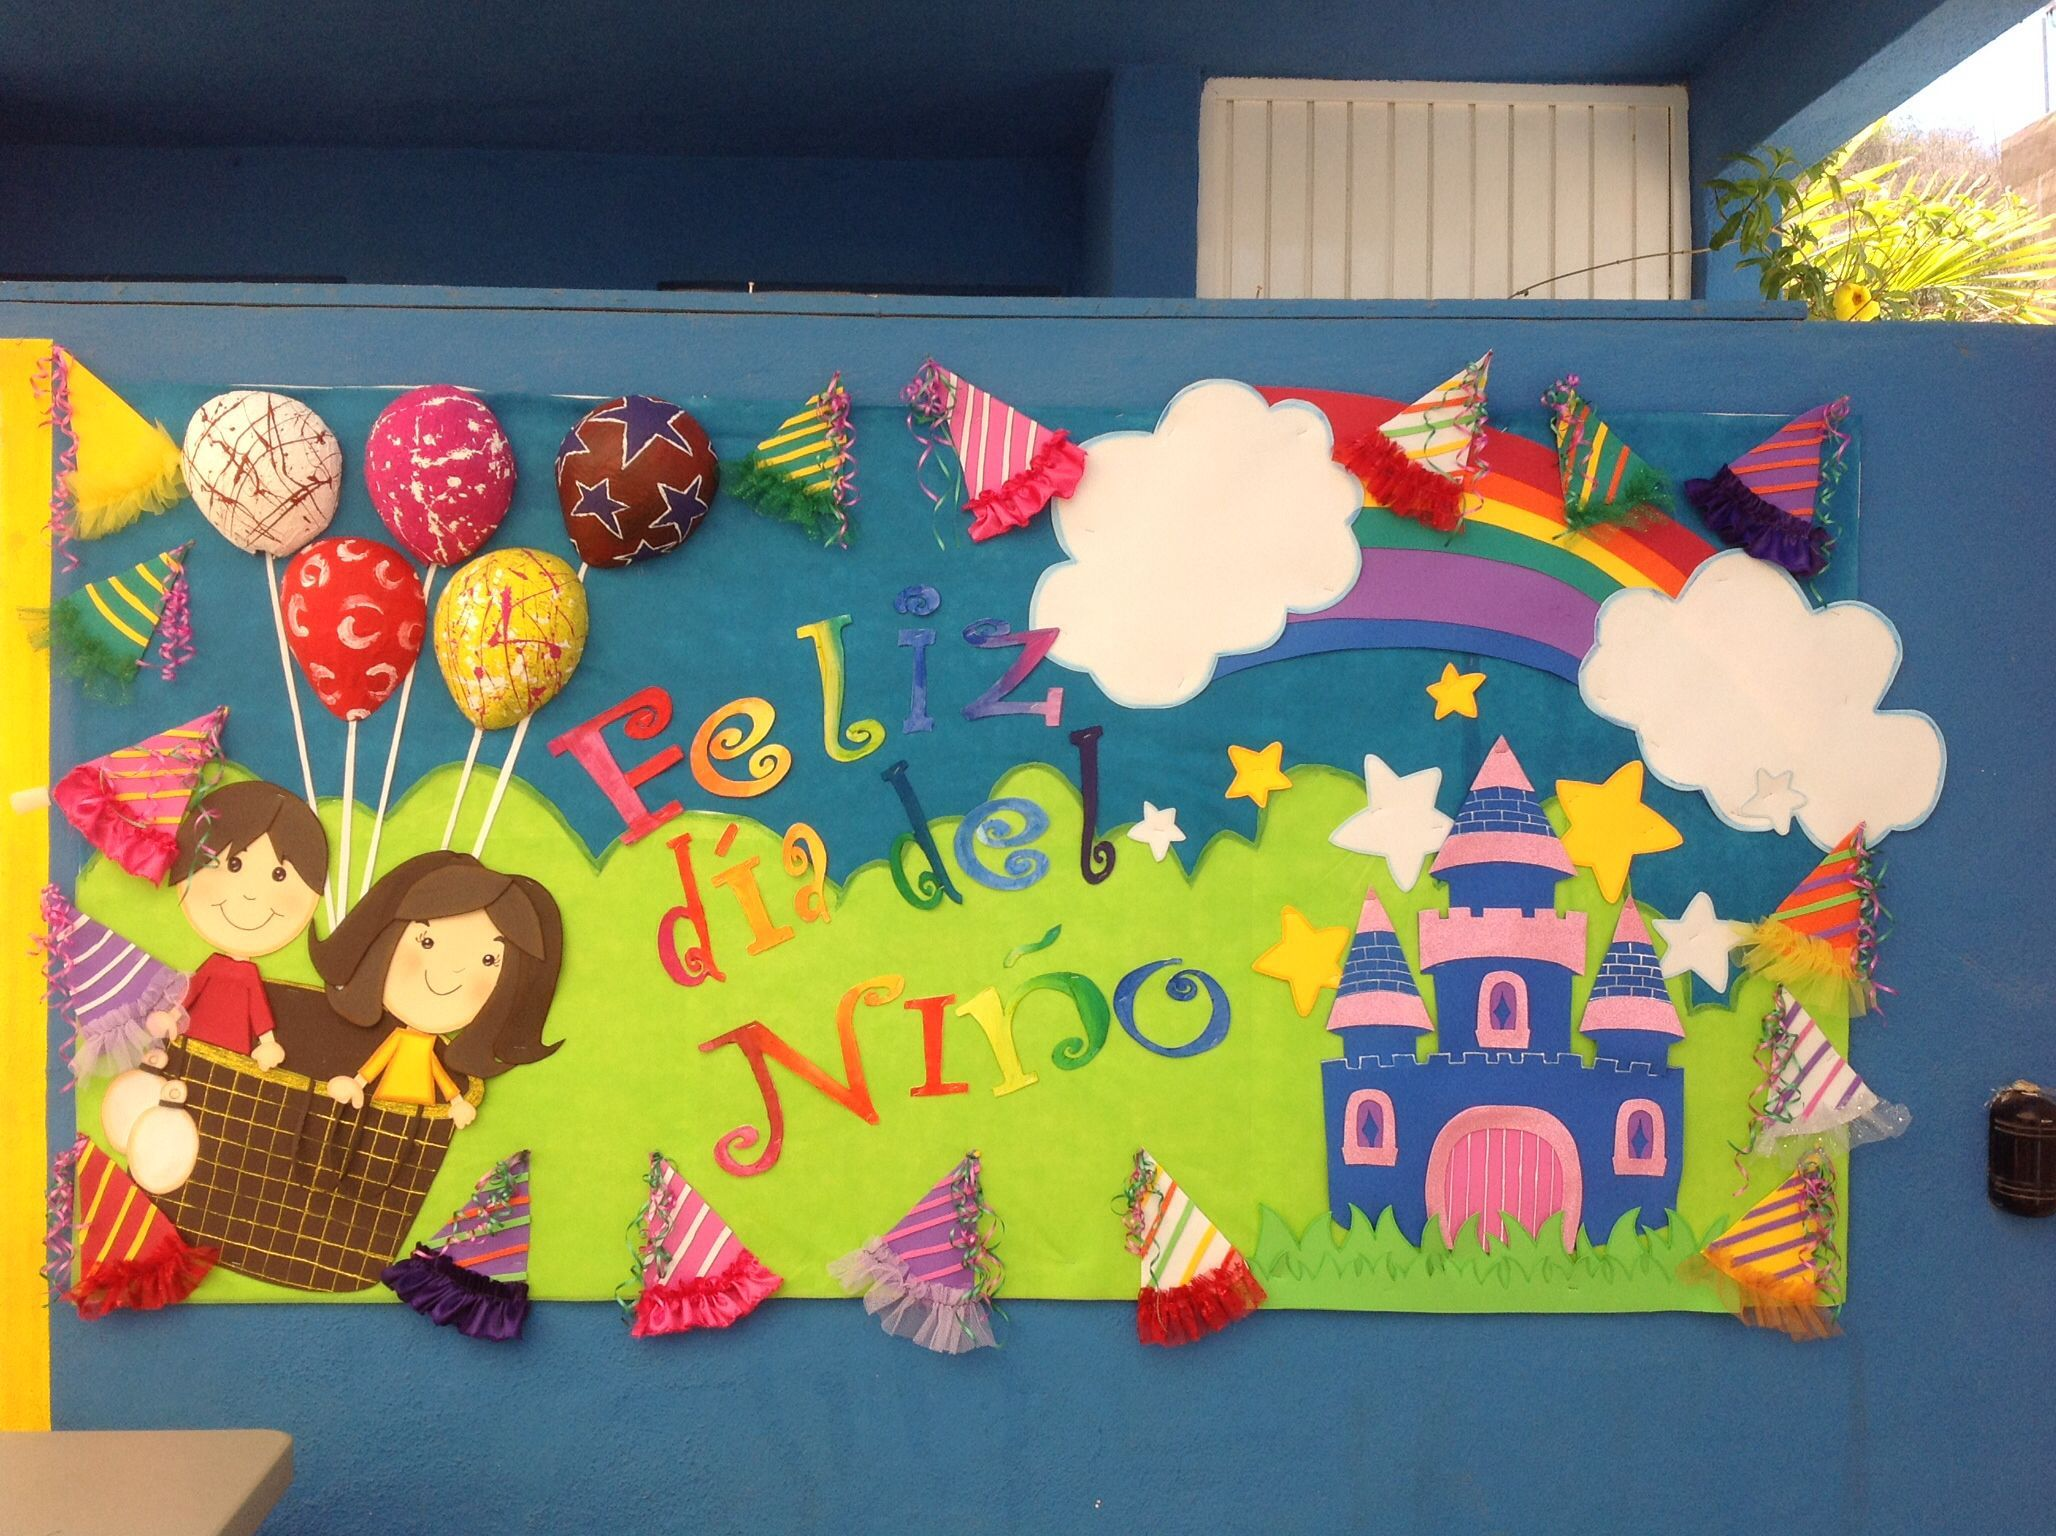 Dia del ni o ideas para decorar el sal n de clase for Decoracion puerta aula infantil